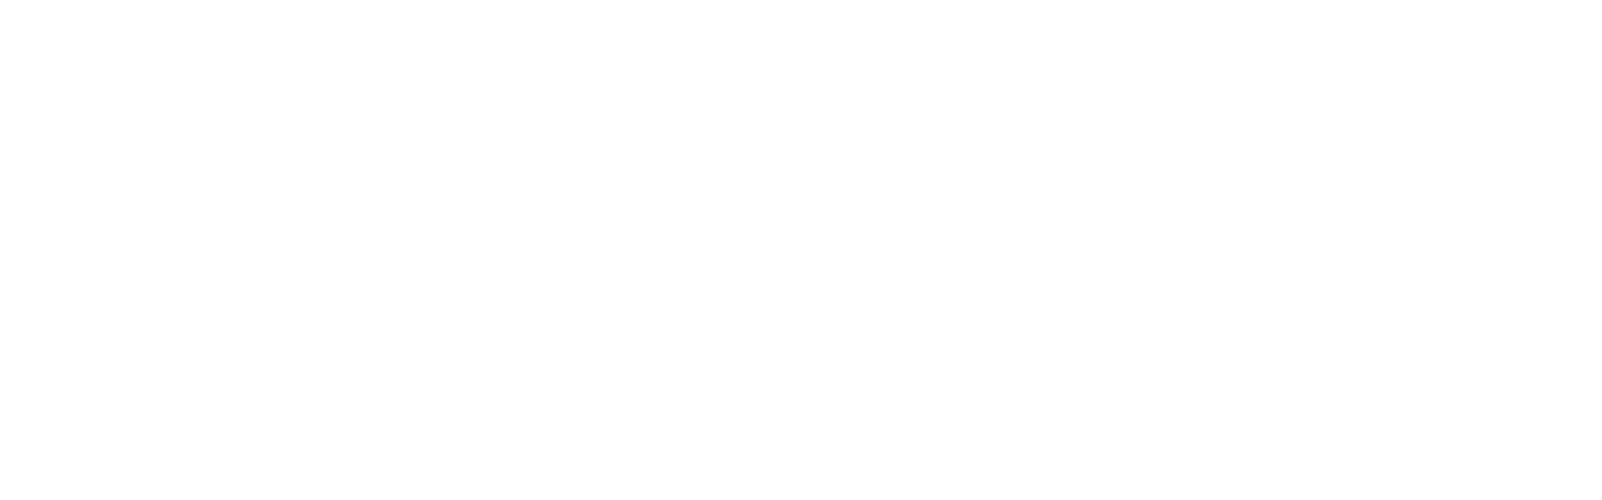 Clearscope Legal